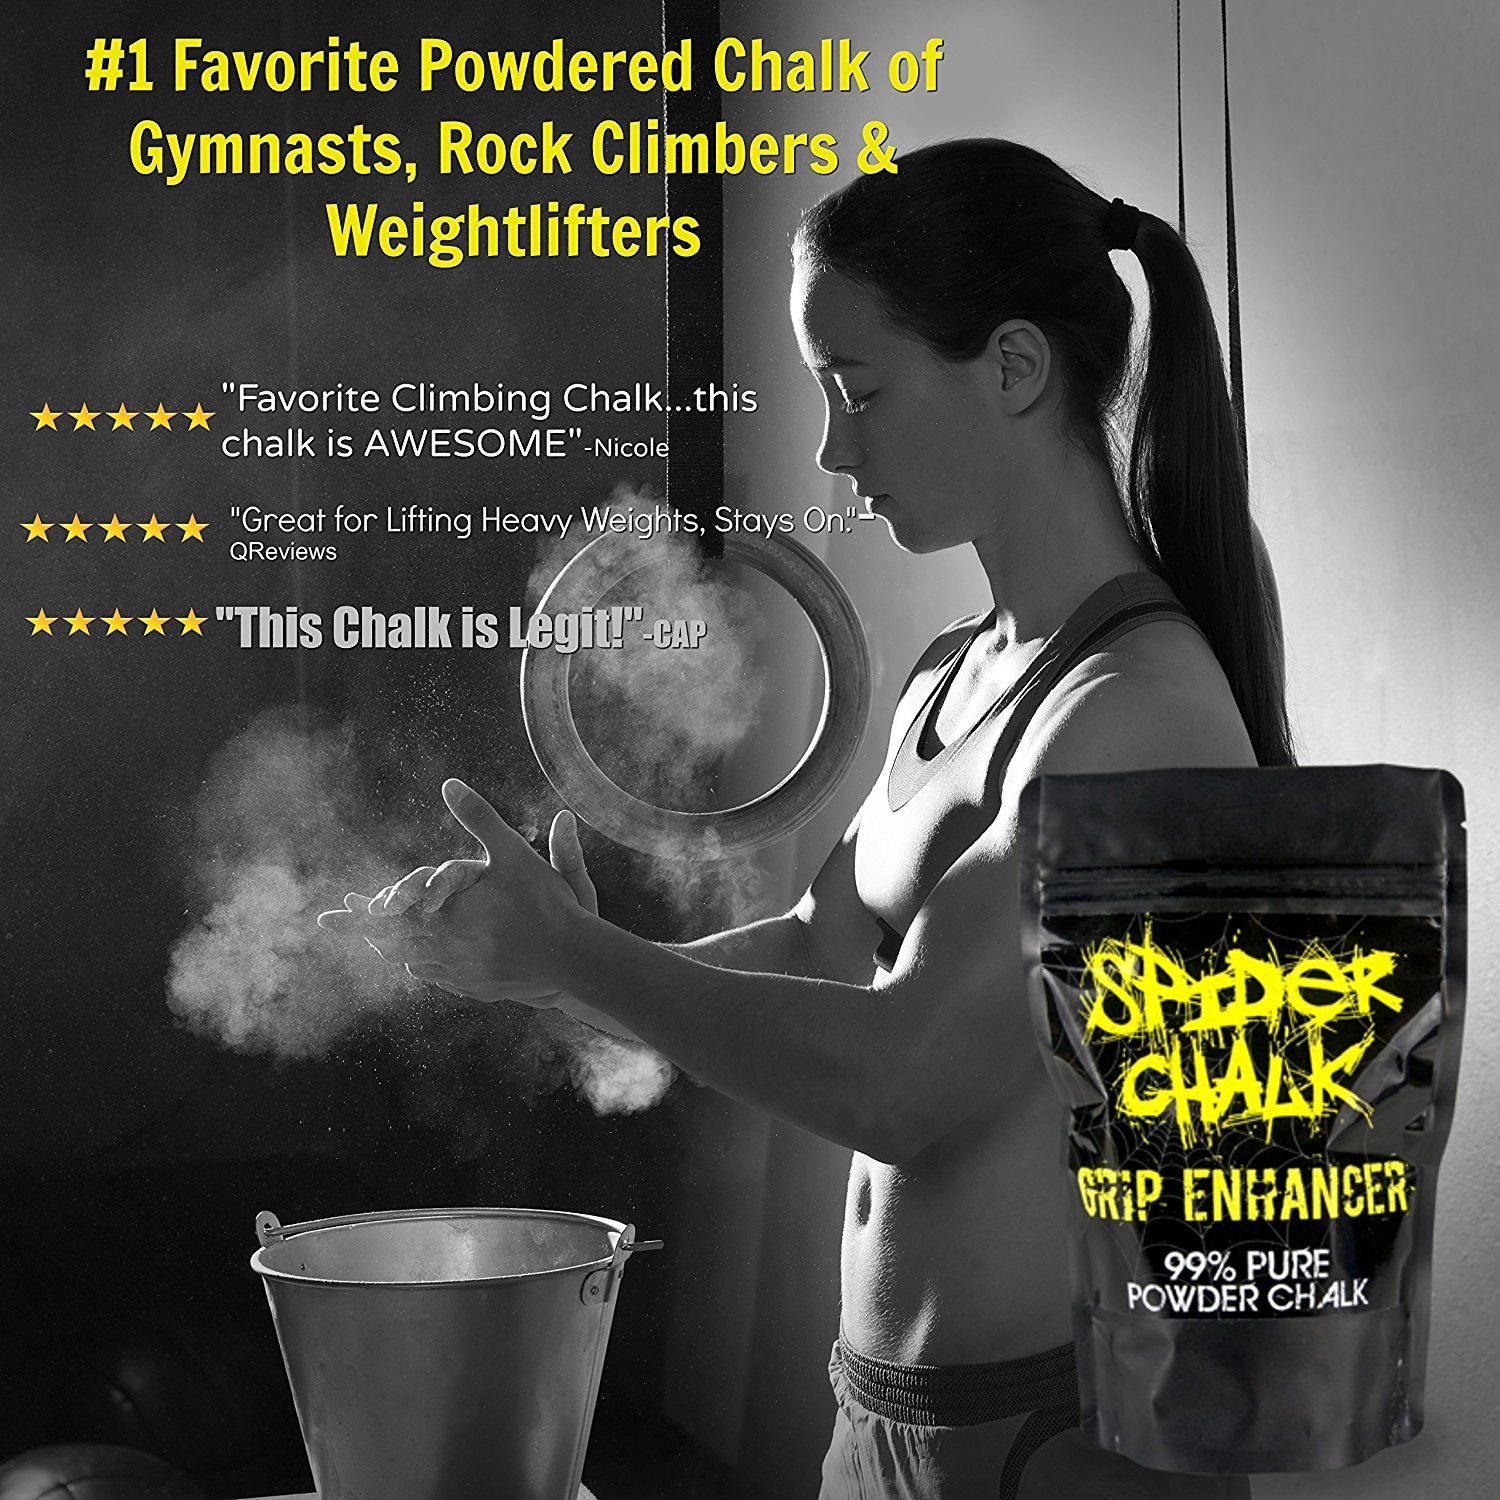 Premium Loose Workout Sport Chalk for Rock Climbing Weight Lifting Chalk Powder Sports Cross Fitness Training 99/% Pure Powdered Magnesium Carbonate Made in the USA and Gymnastics Spider Chalk Grip Enhancer